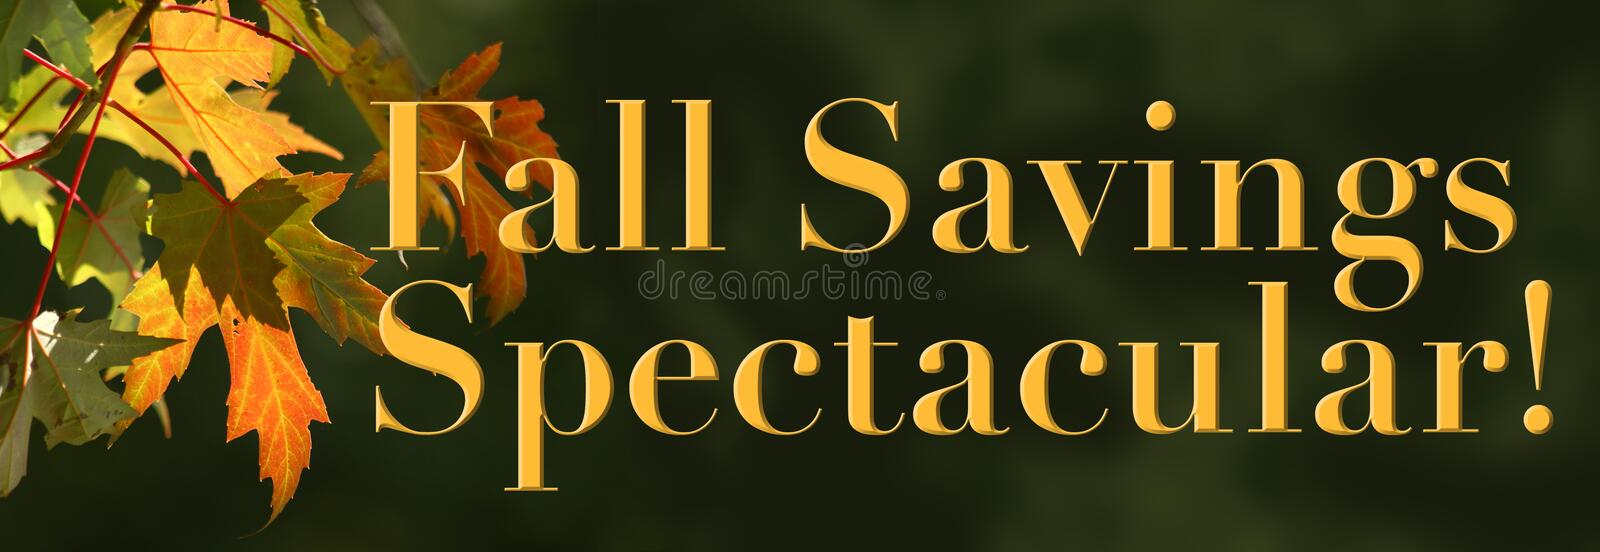 Fall Savings Spectacular! royalty free stock photos